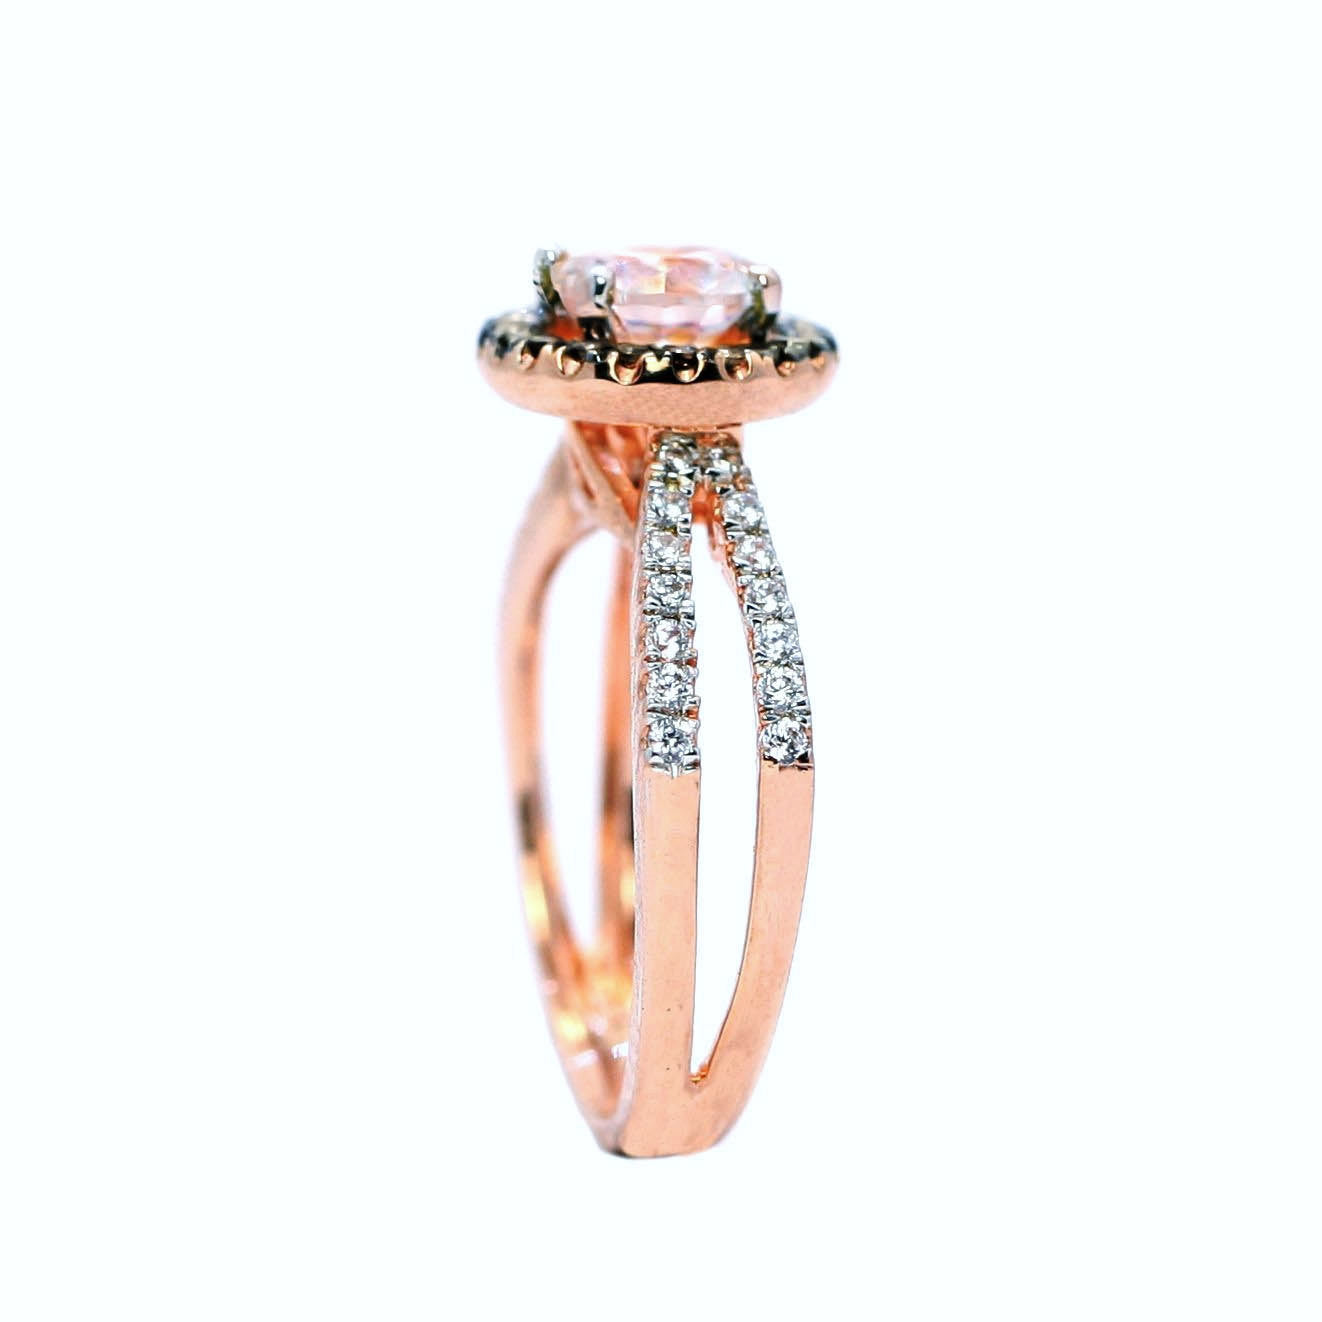 Floating Halo Engagement Ring, Rose Gold, 6.5 mm Morganite Center Stone, White & Chocolate Brown Diamond Accent Stones,Anniversary - MG94656